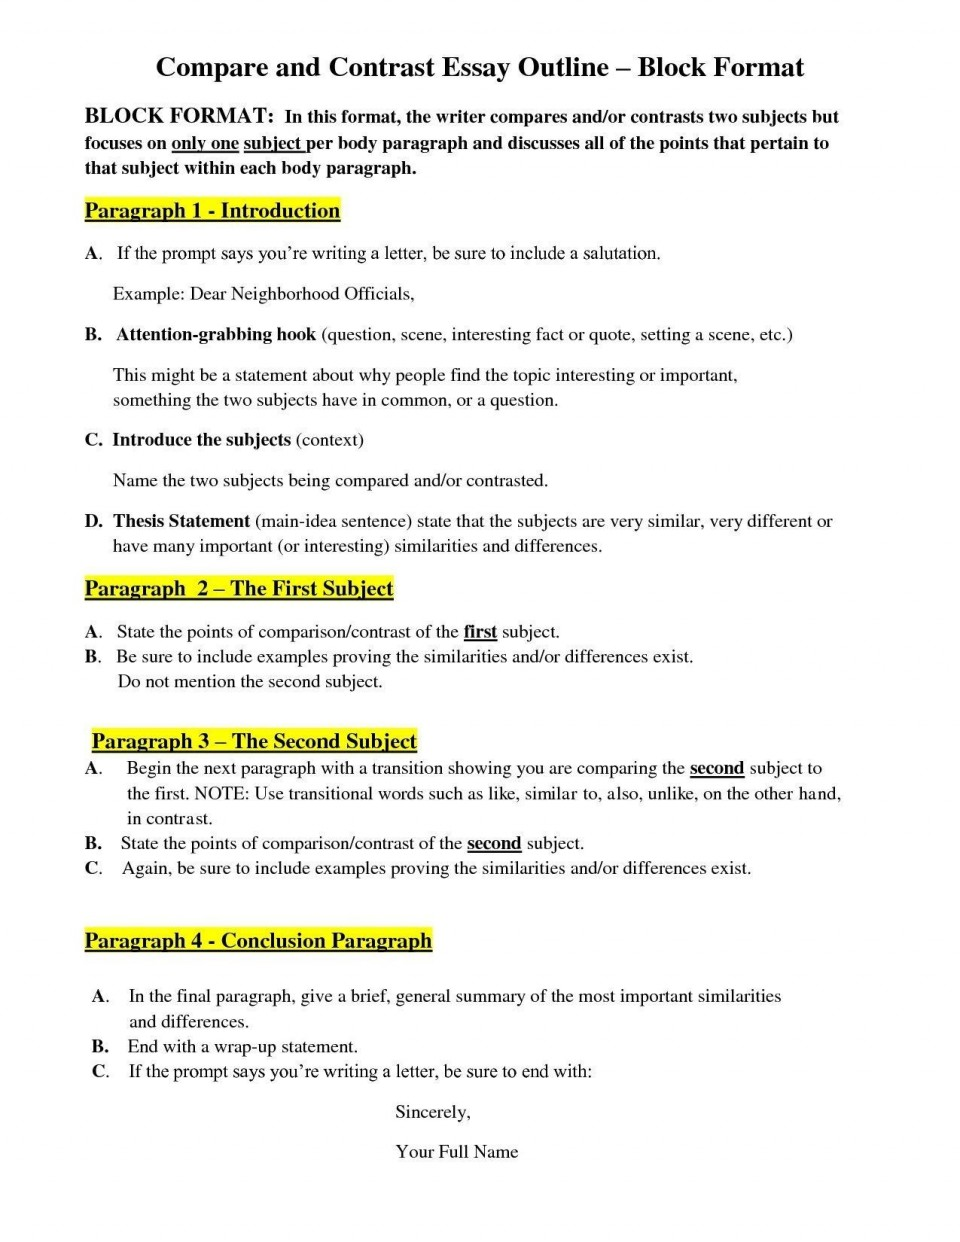 014 Essay Examplempare Andntrastmparison Best Examples Of Scenario In 6th Grade An Goo 3rd Food 5th Middle School Block Format Pdf High 4th Vs Striking Compare And Contrast Example For College Outline 960